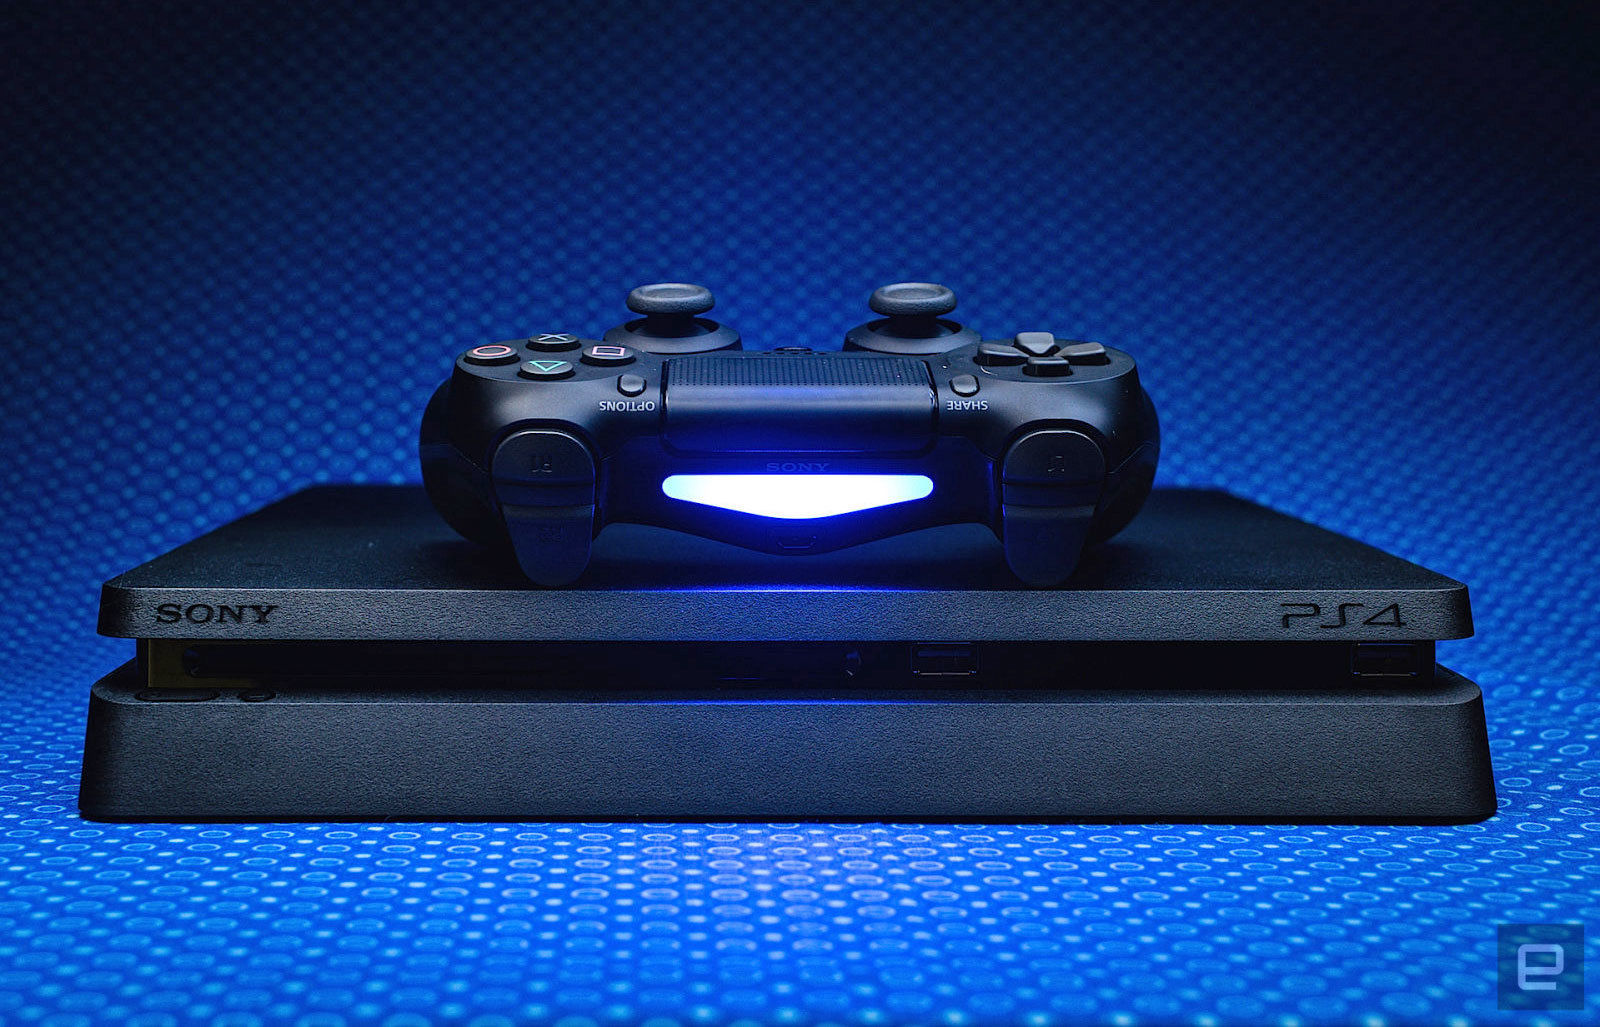 The Best Games For Ps4 Engadget